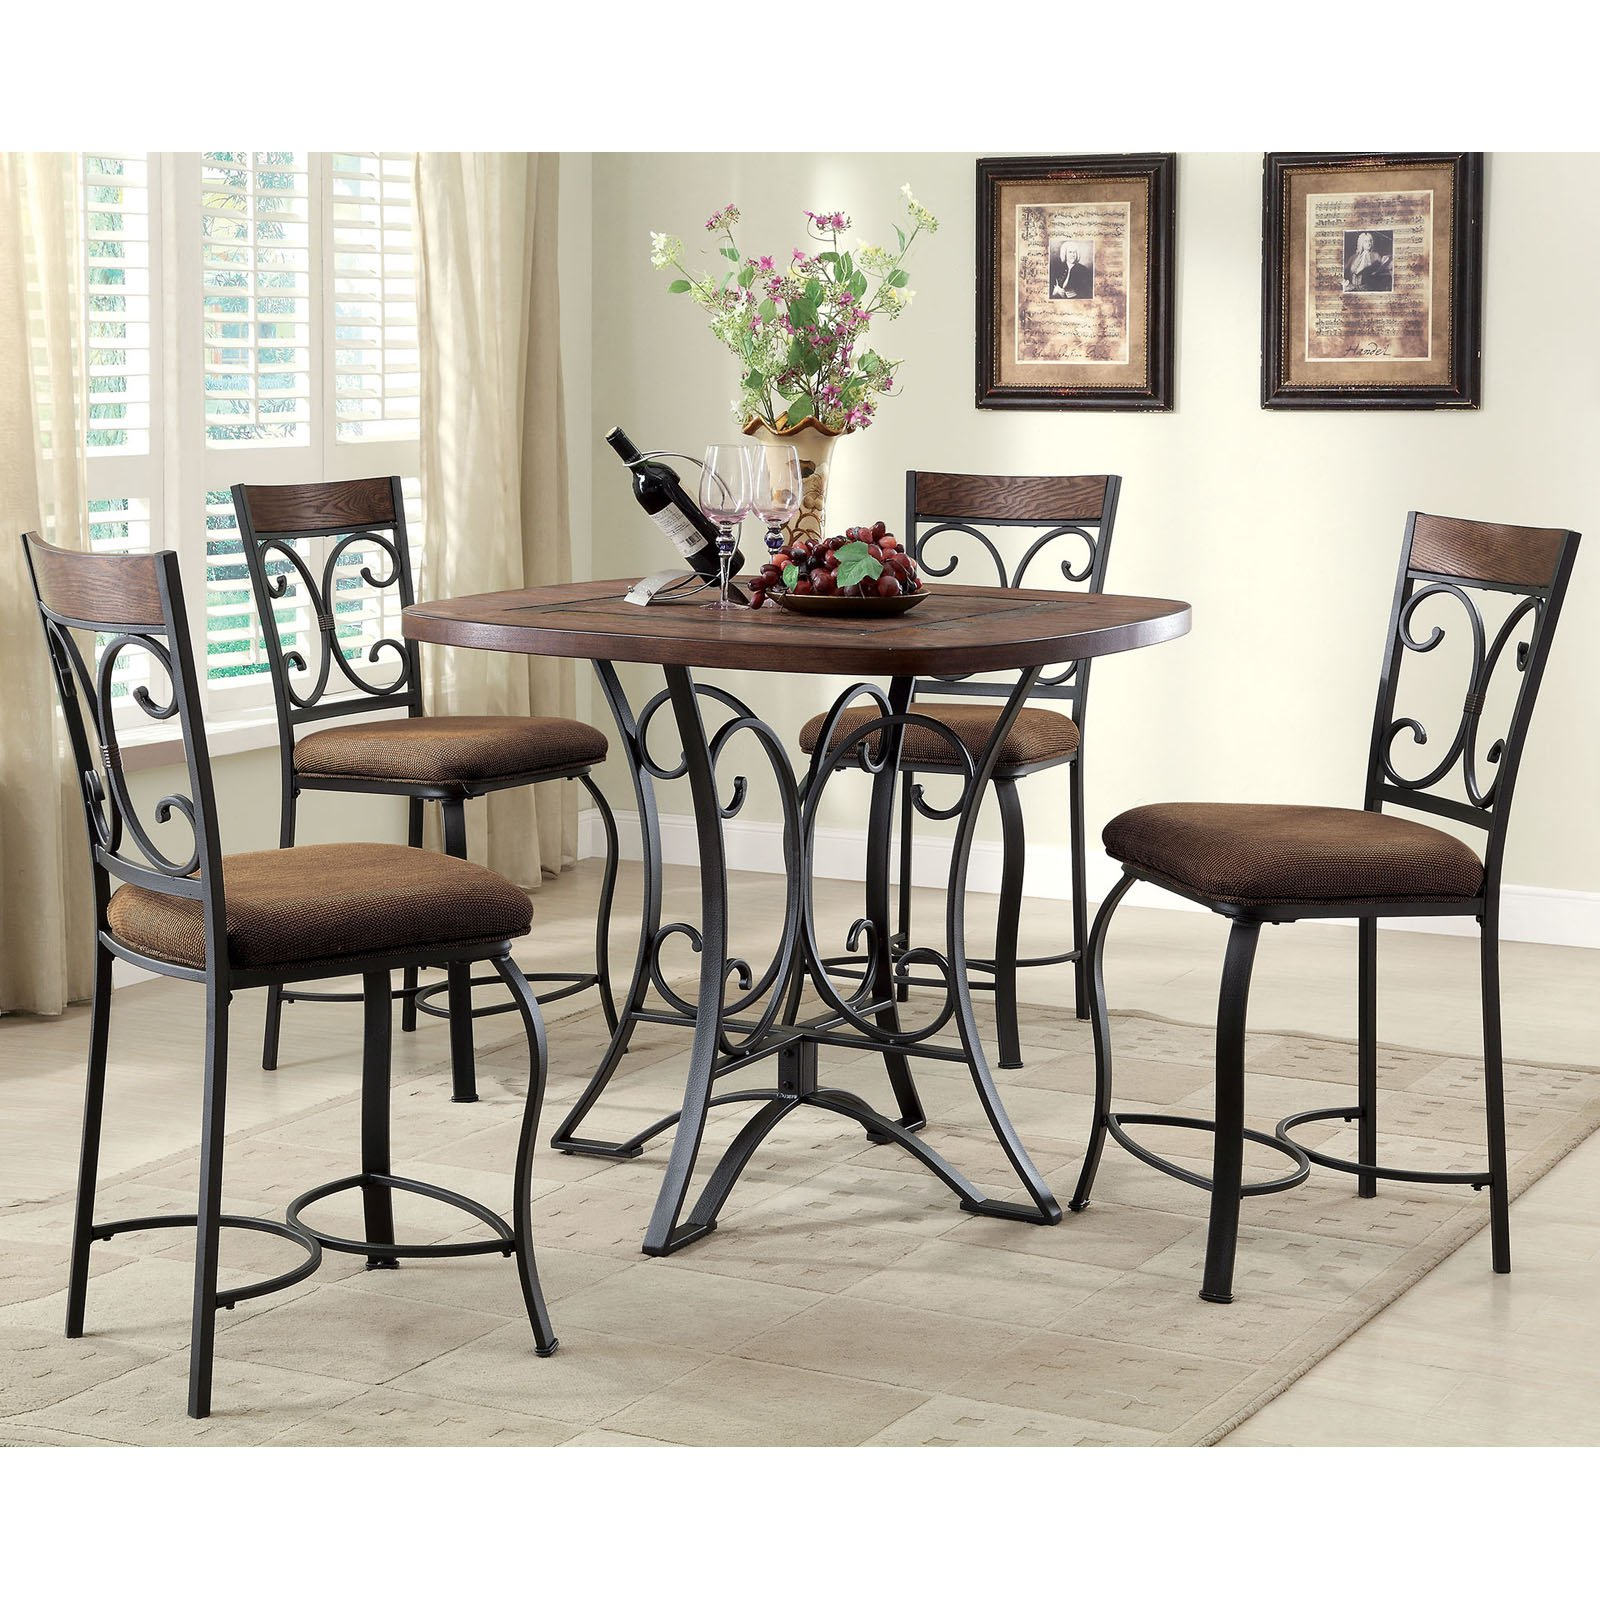 acme furniture hakesa 5 piece round counter height dining table set